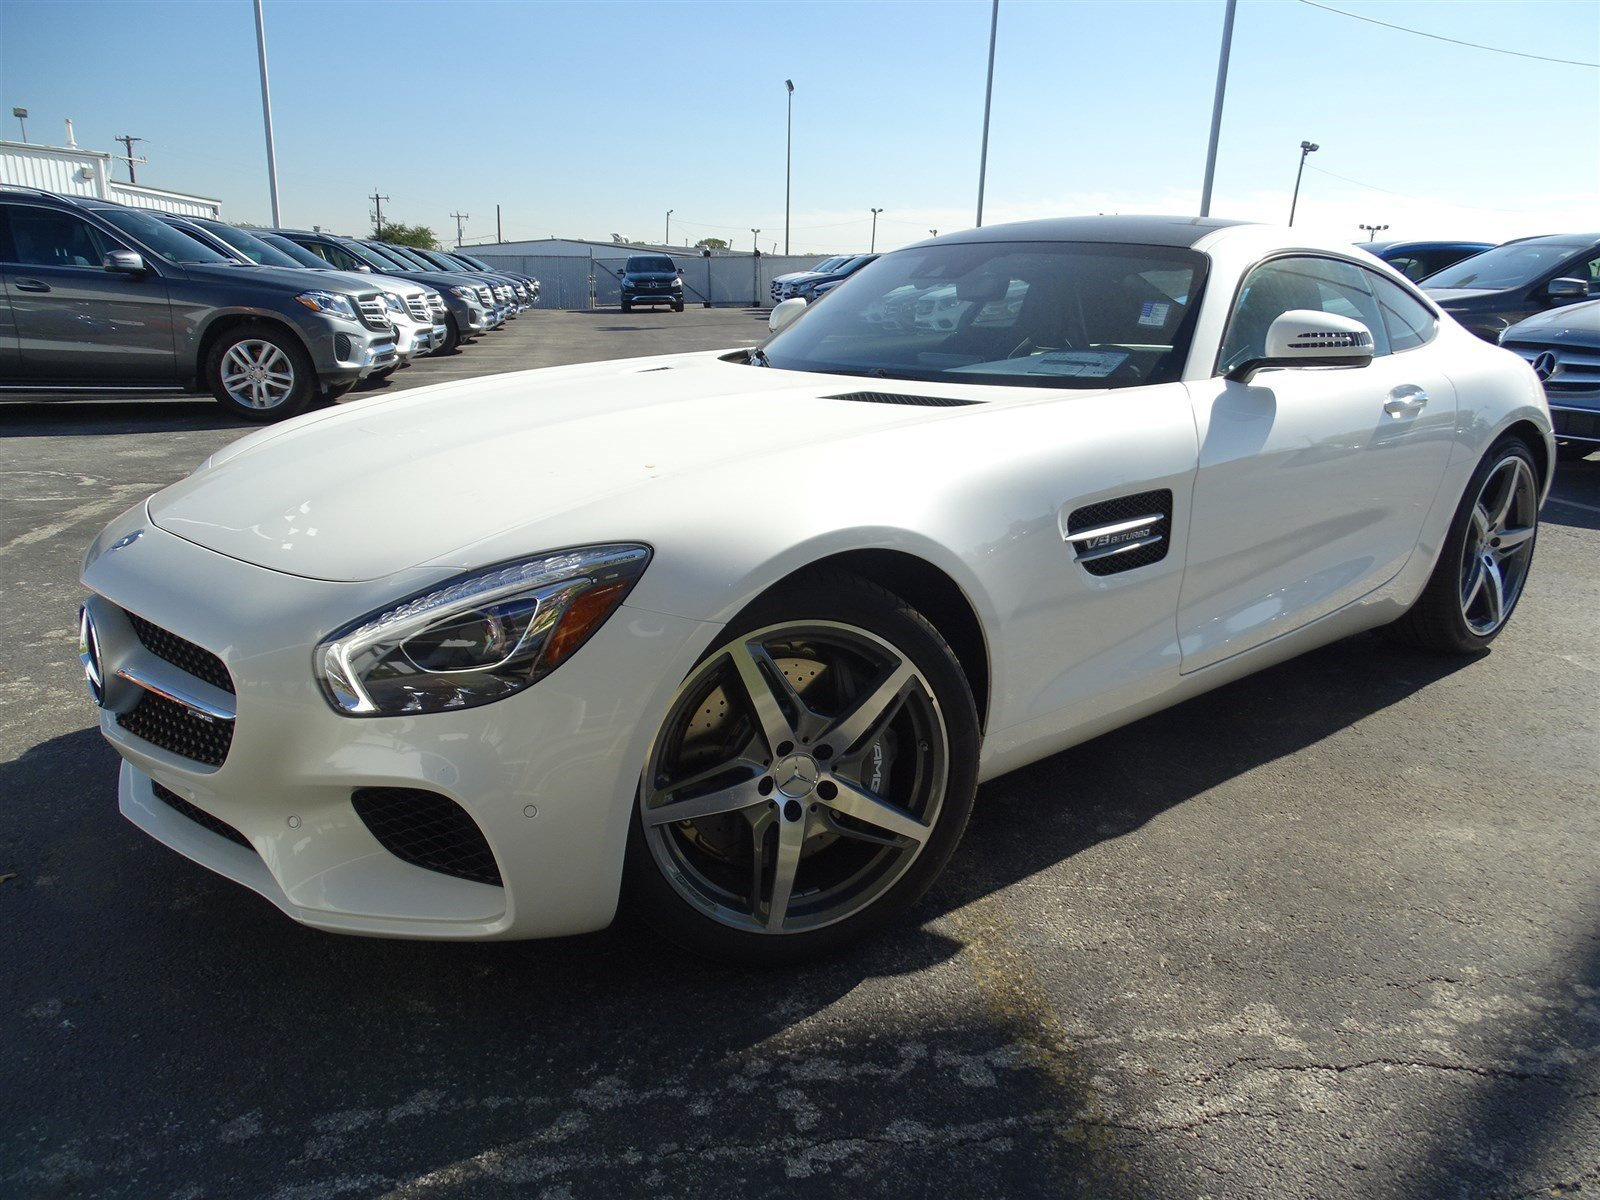 New 2017 mercedes benz amg gt coupe in san antonio for 2017 mercedes benz amg gt msrp